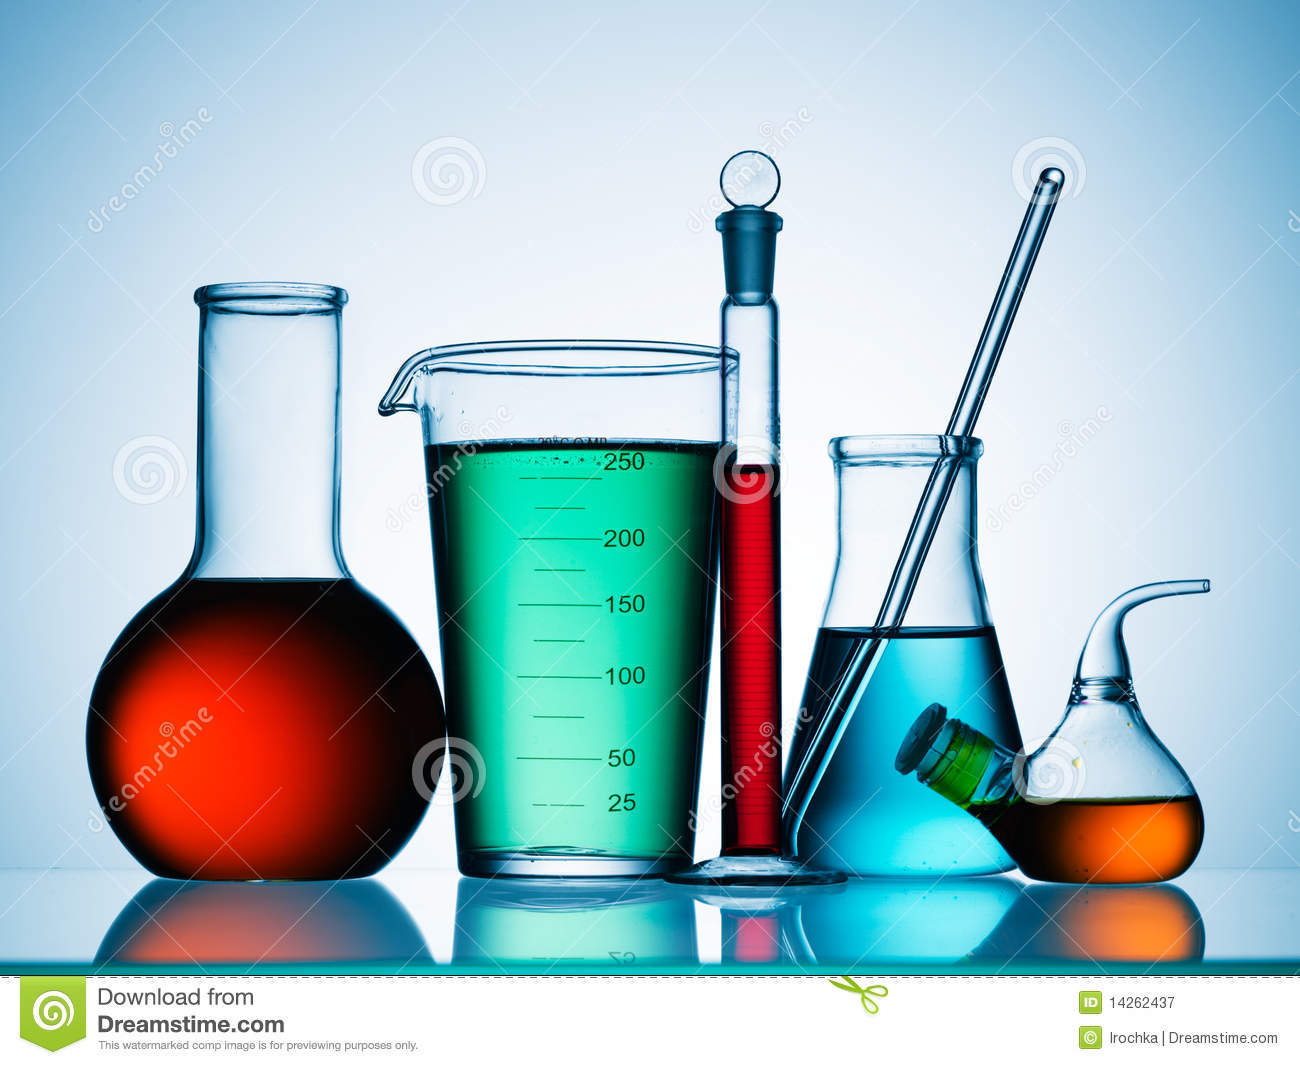 Science Lab Chemicals Royalty Free Stock Photography - Image: 14262437